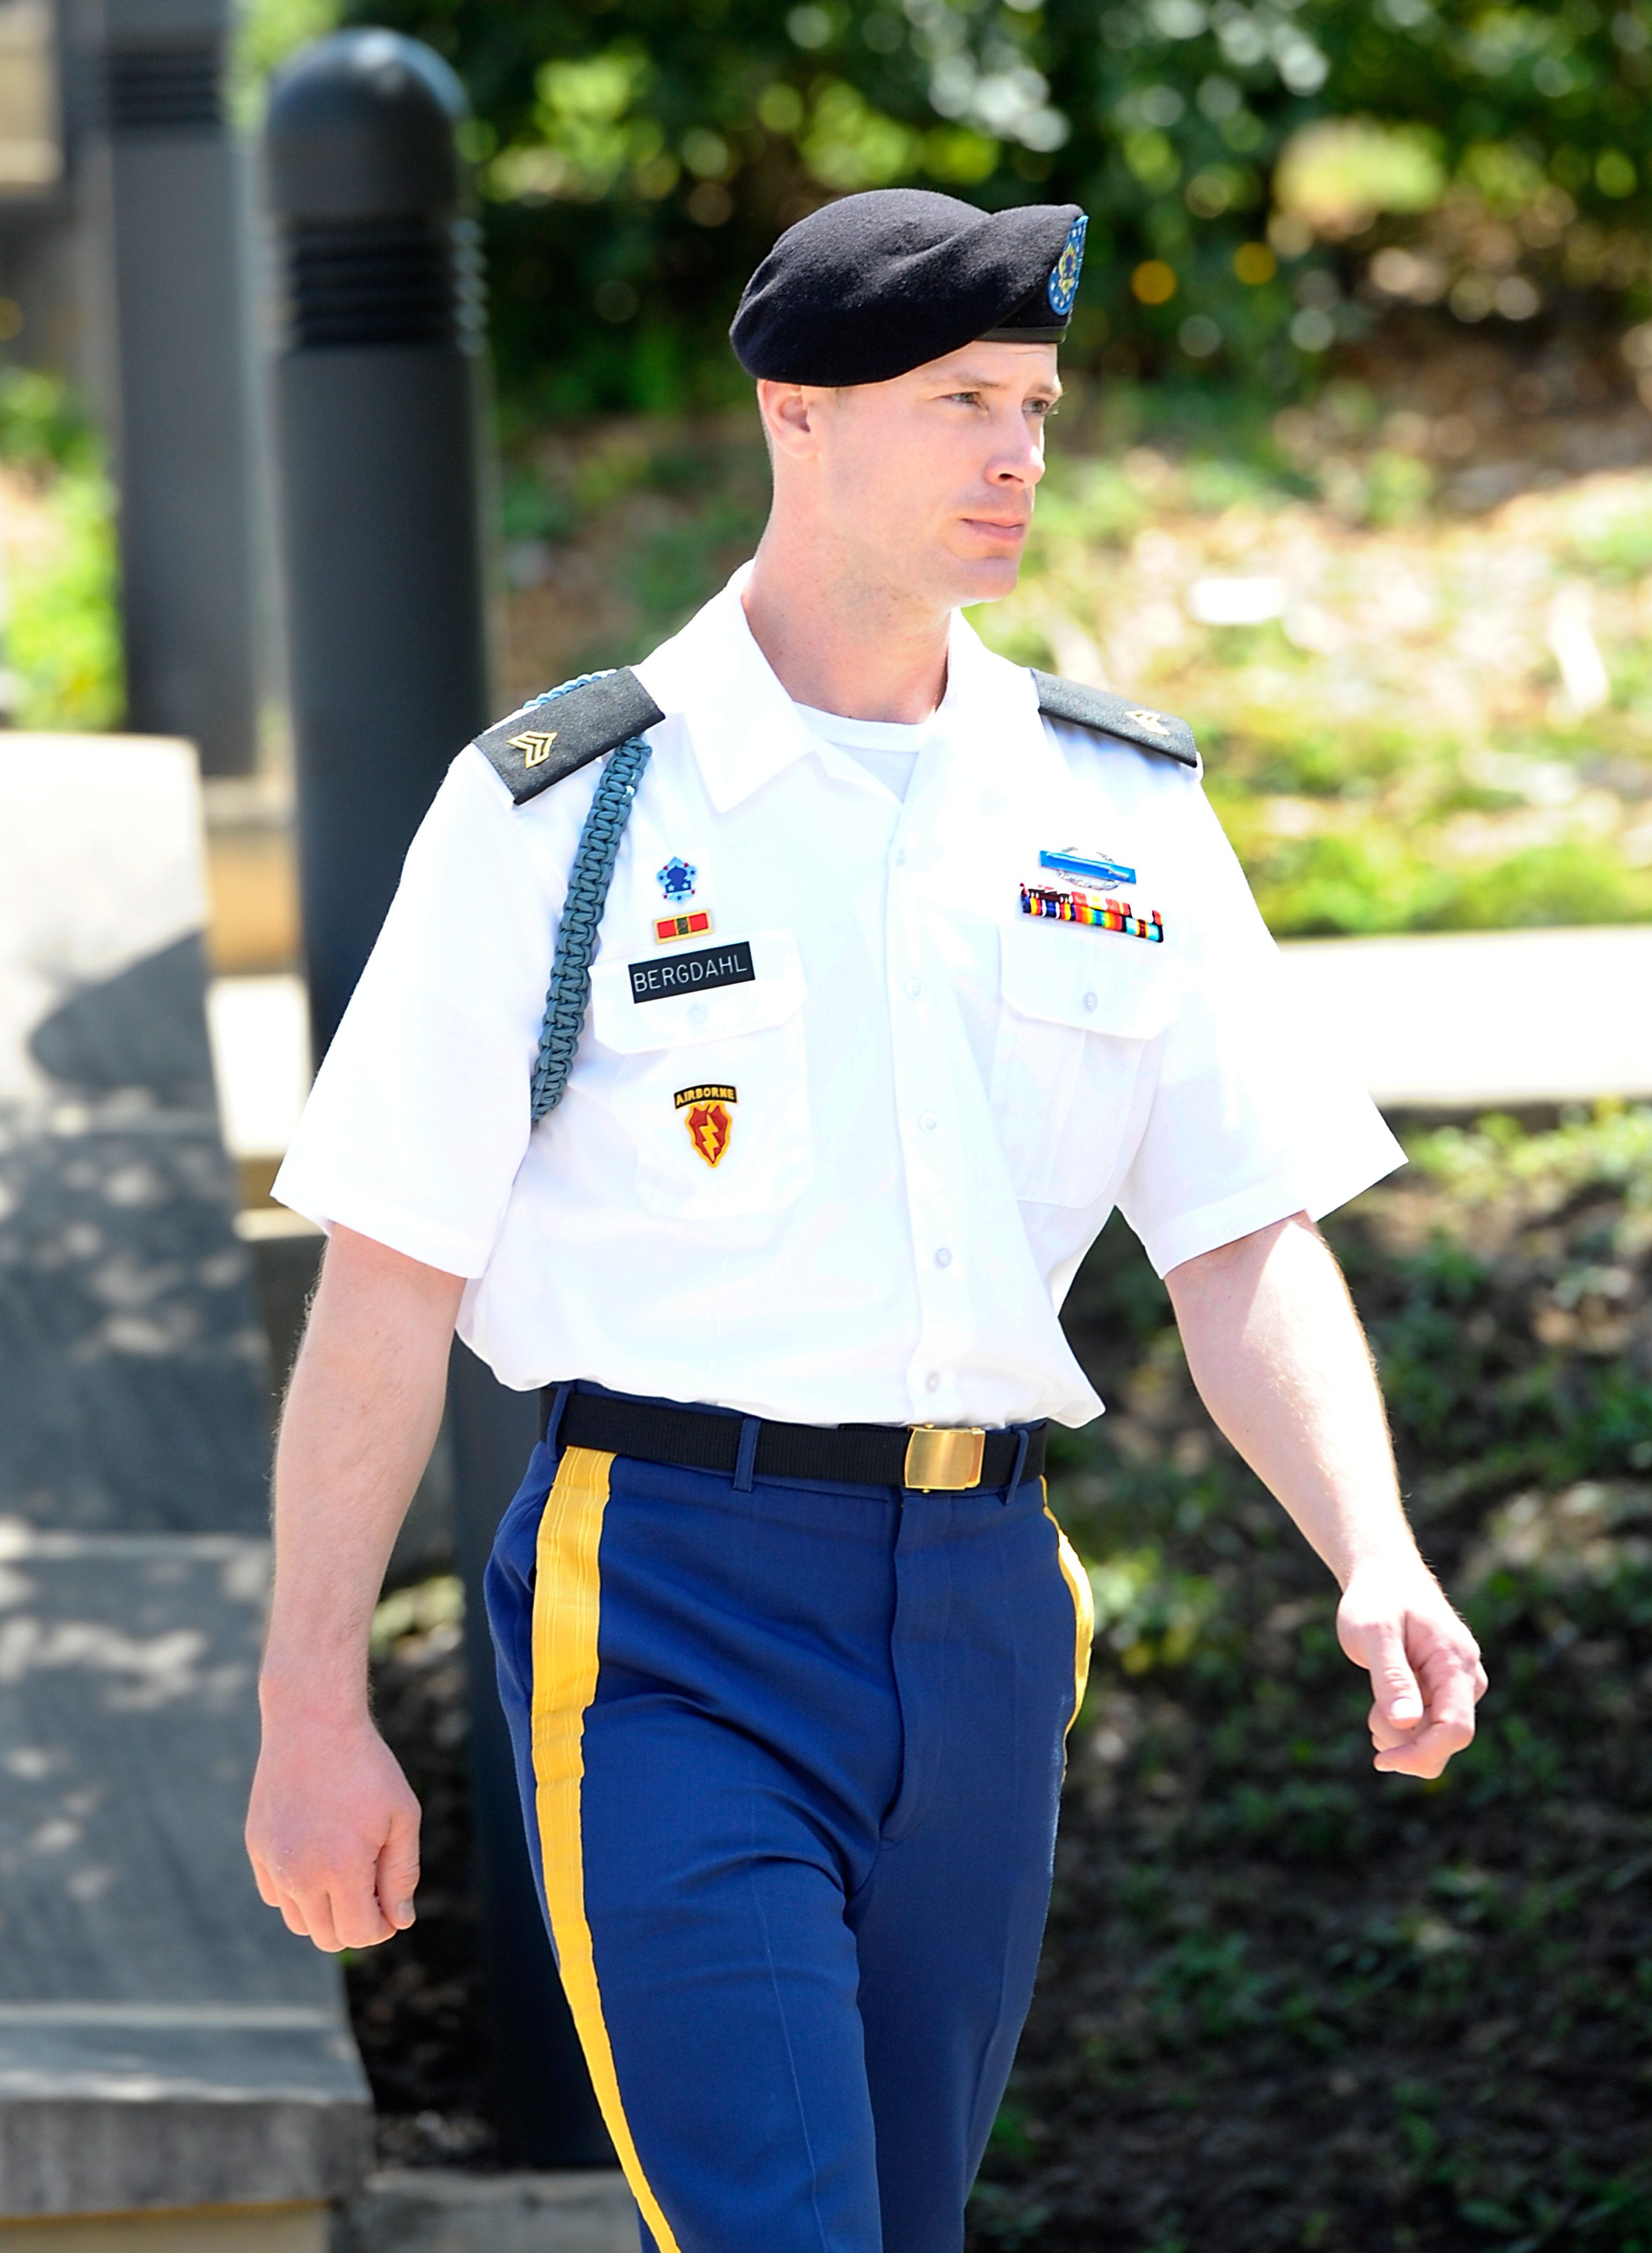 FT. BRAGG, NC - JULY 7:  U.S. Army Sgt. Robert Bowdrie 'Bowe' Bergdahl (right), 30 of Hailey, Idaho, leaves the Ft. Bragg military courthouse during a recess in a pretrial military hearing on July 7, 2016 in Ft. Bragg, North Carolina. Bergdahl faces charges of desertion and endangering troops stemming from his decision to leave his outpost in 2009, which landed him five years in Taliban captivity.  (Photo by Sara D. Davis/Getty Images)